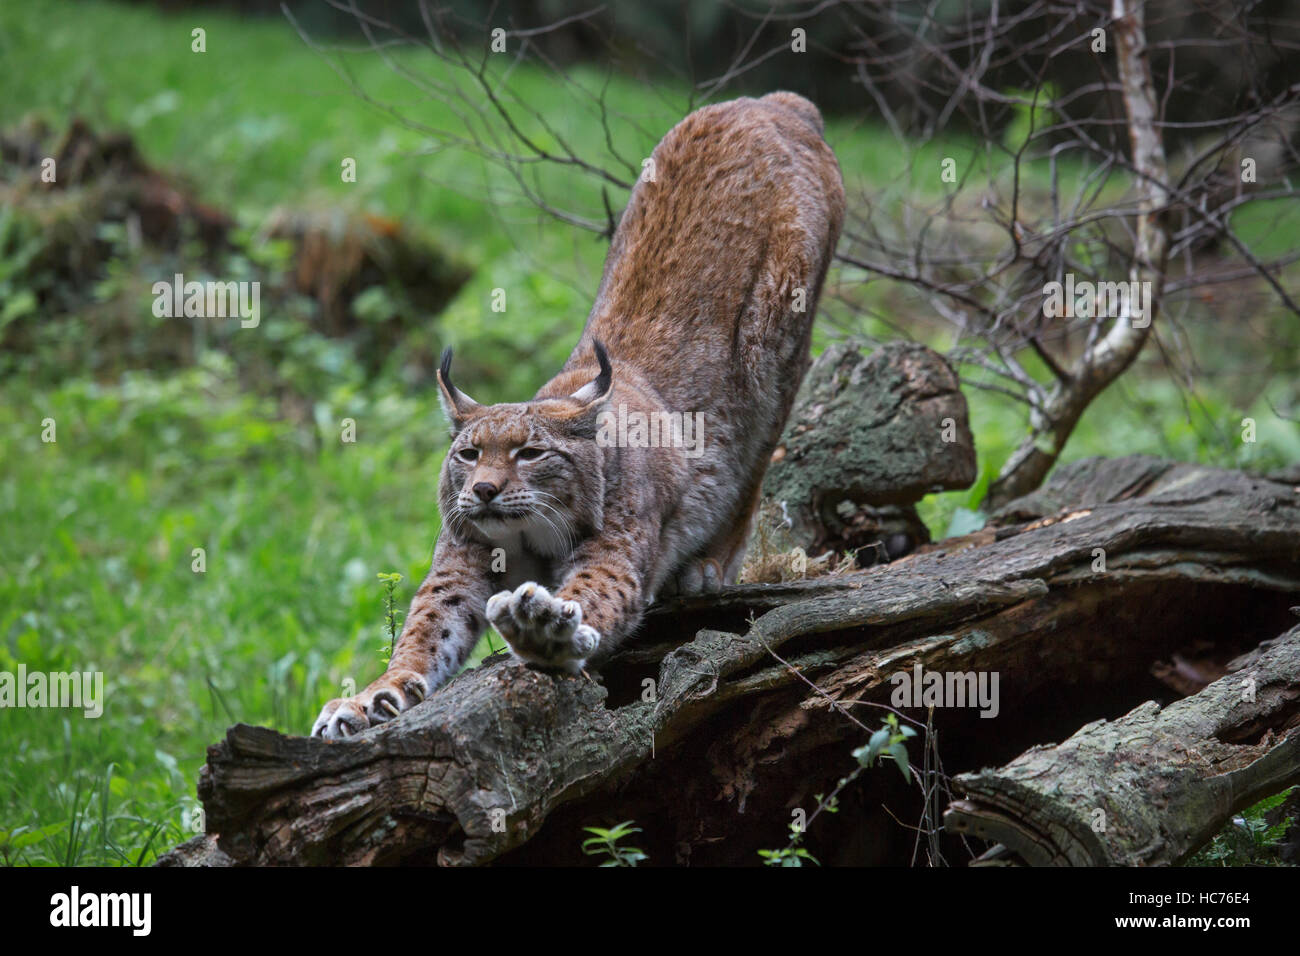 Eurasian lynx (Lynx lynx) stretching limbs and sharpening claws on tree trunk in forest - Stock Image